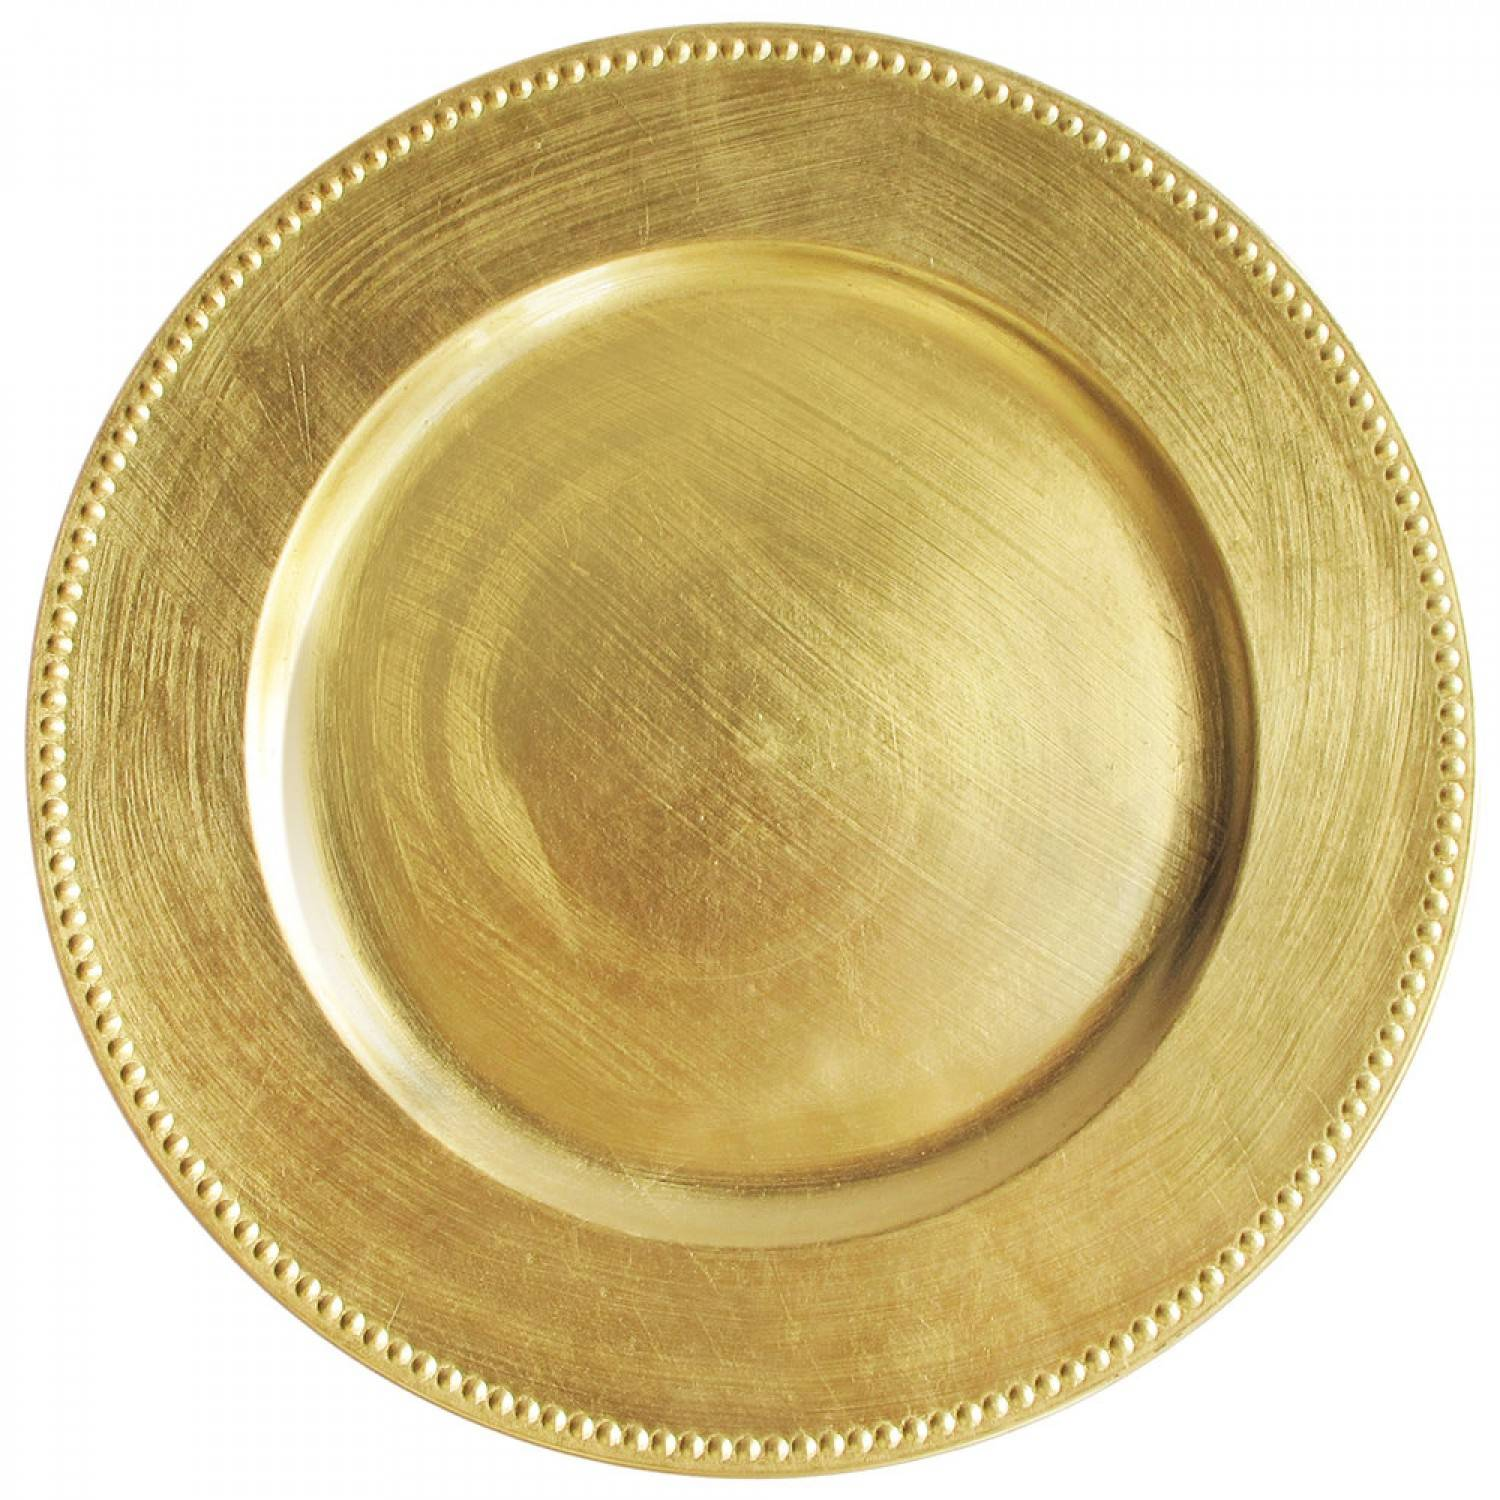 Round Acrylic Gold Beaded Charger Plate 13""